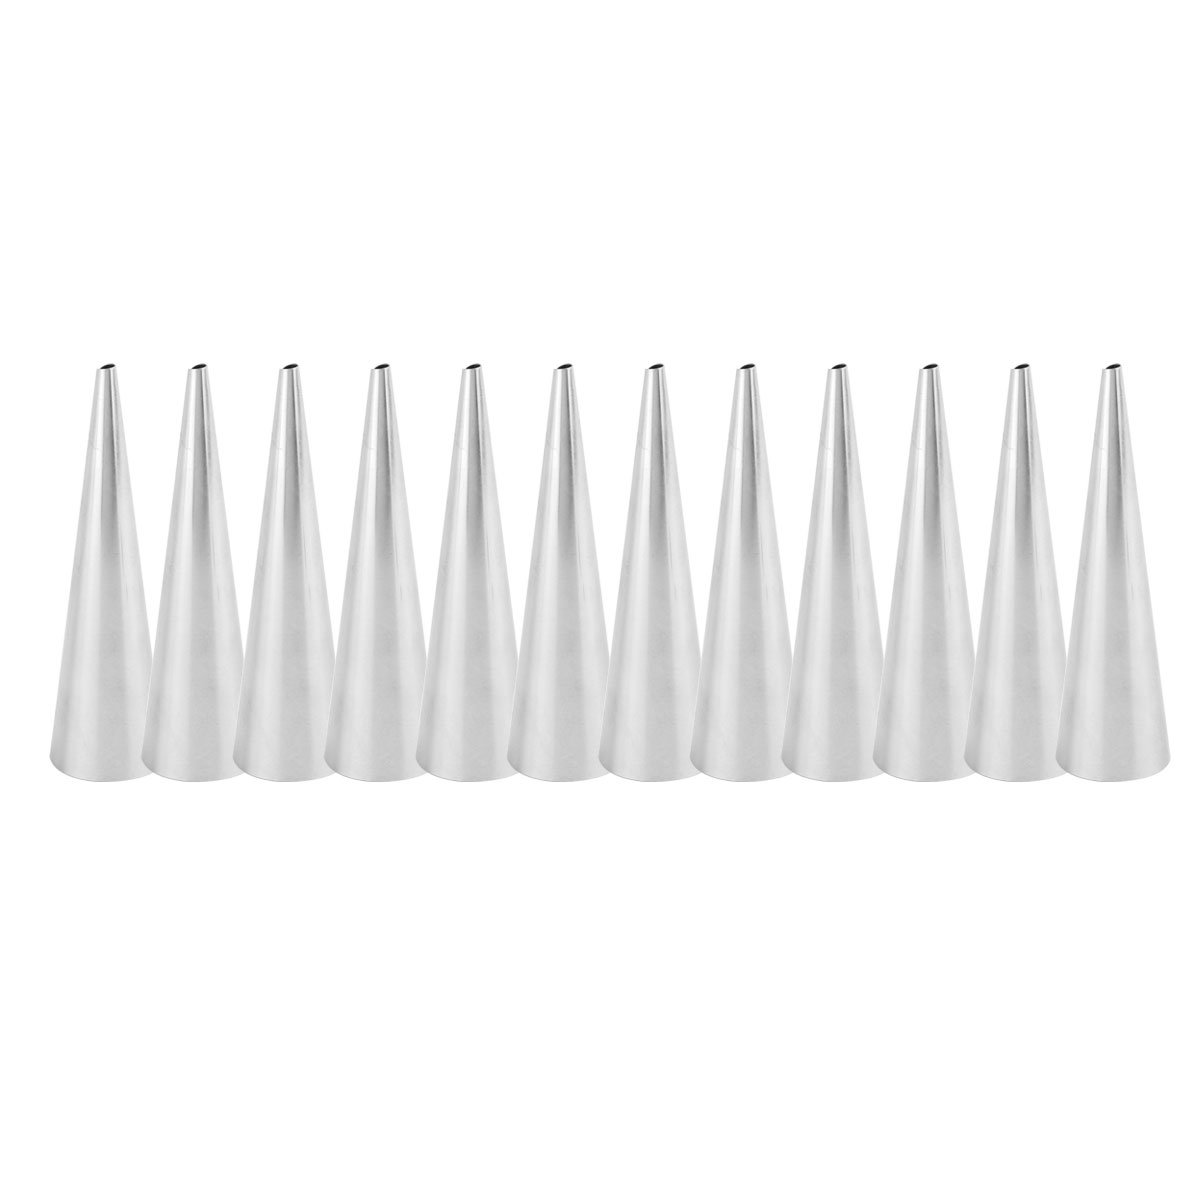 FEESHOW 12PCS Cannoli Baking Mould Shapes, Traditional Baking Mould Straight Tube, Cream Roll Conical Shaped One Size